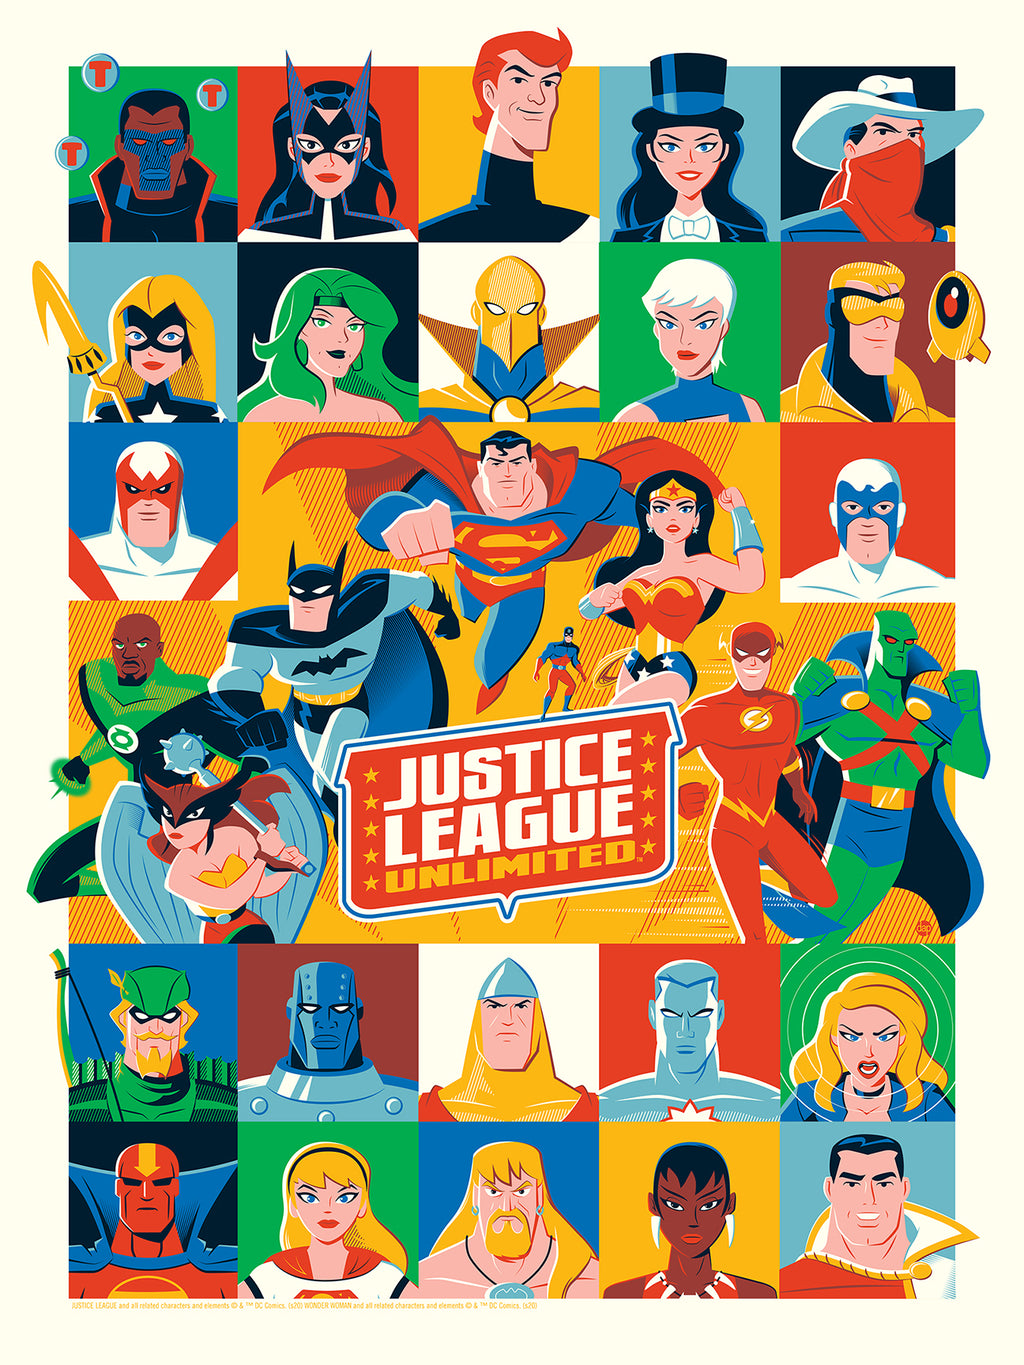 Justice League Unlimited by Dave Perillo